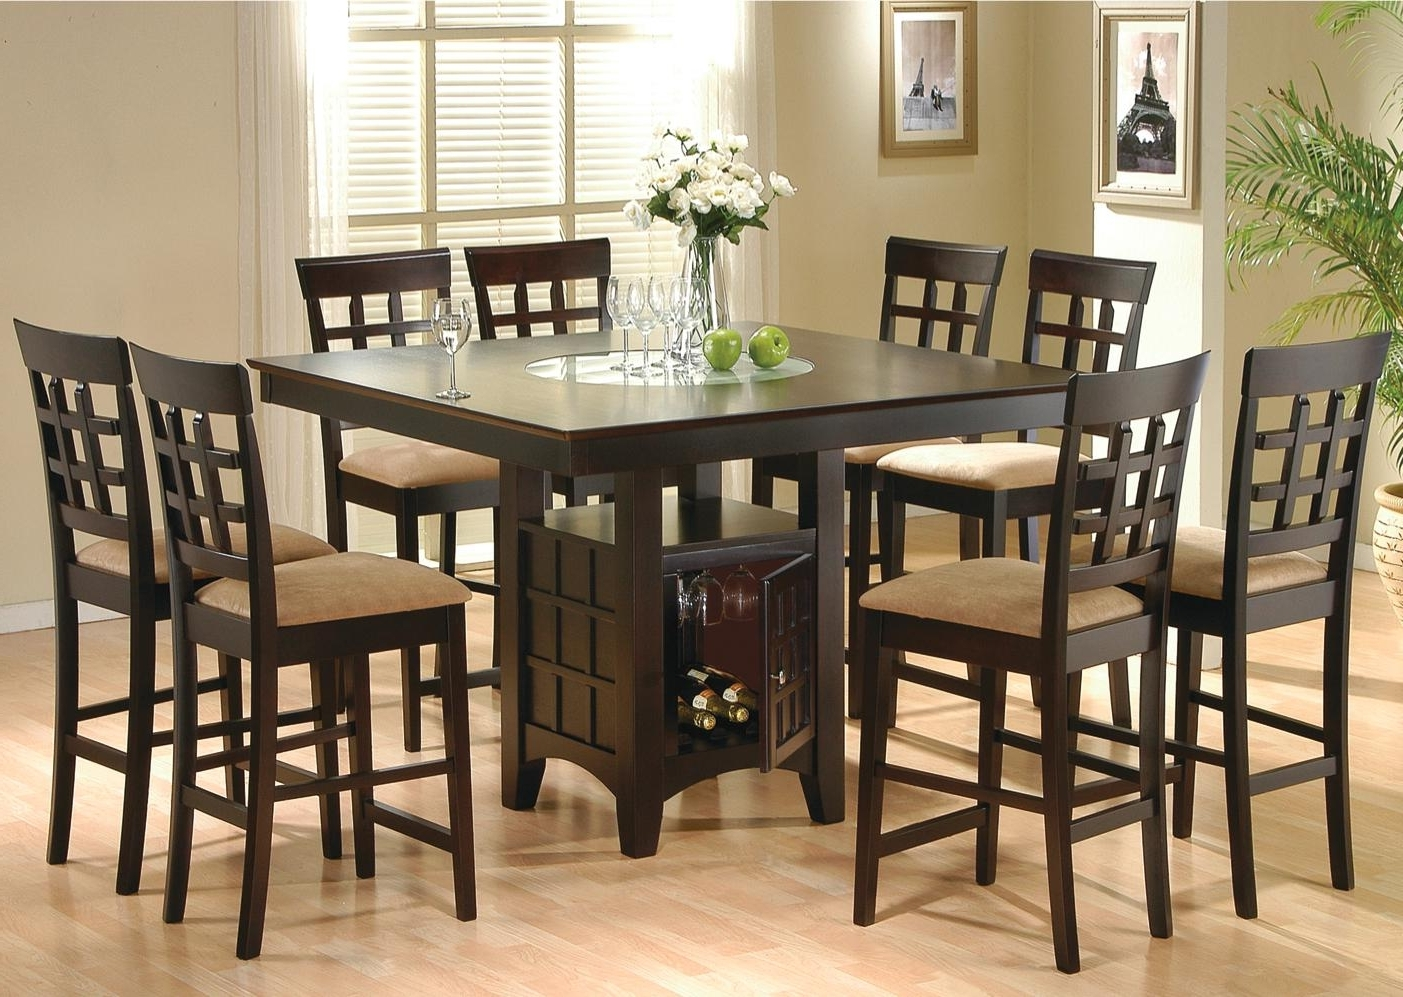 8 Chairs Dining Tables Pertaining To Most Popular 8 Chair Dining Room Set – Www (View 13 of 25)